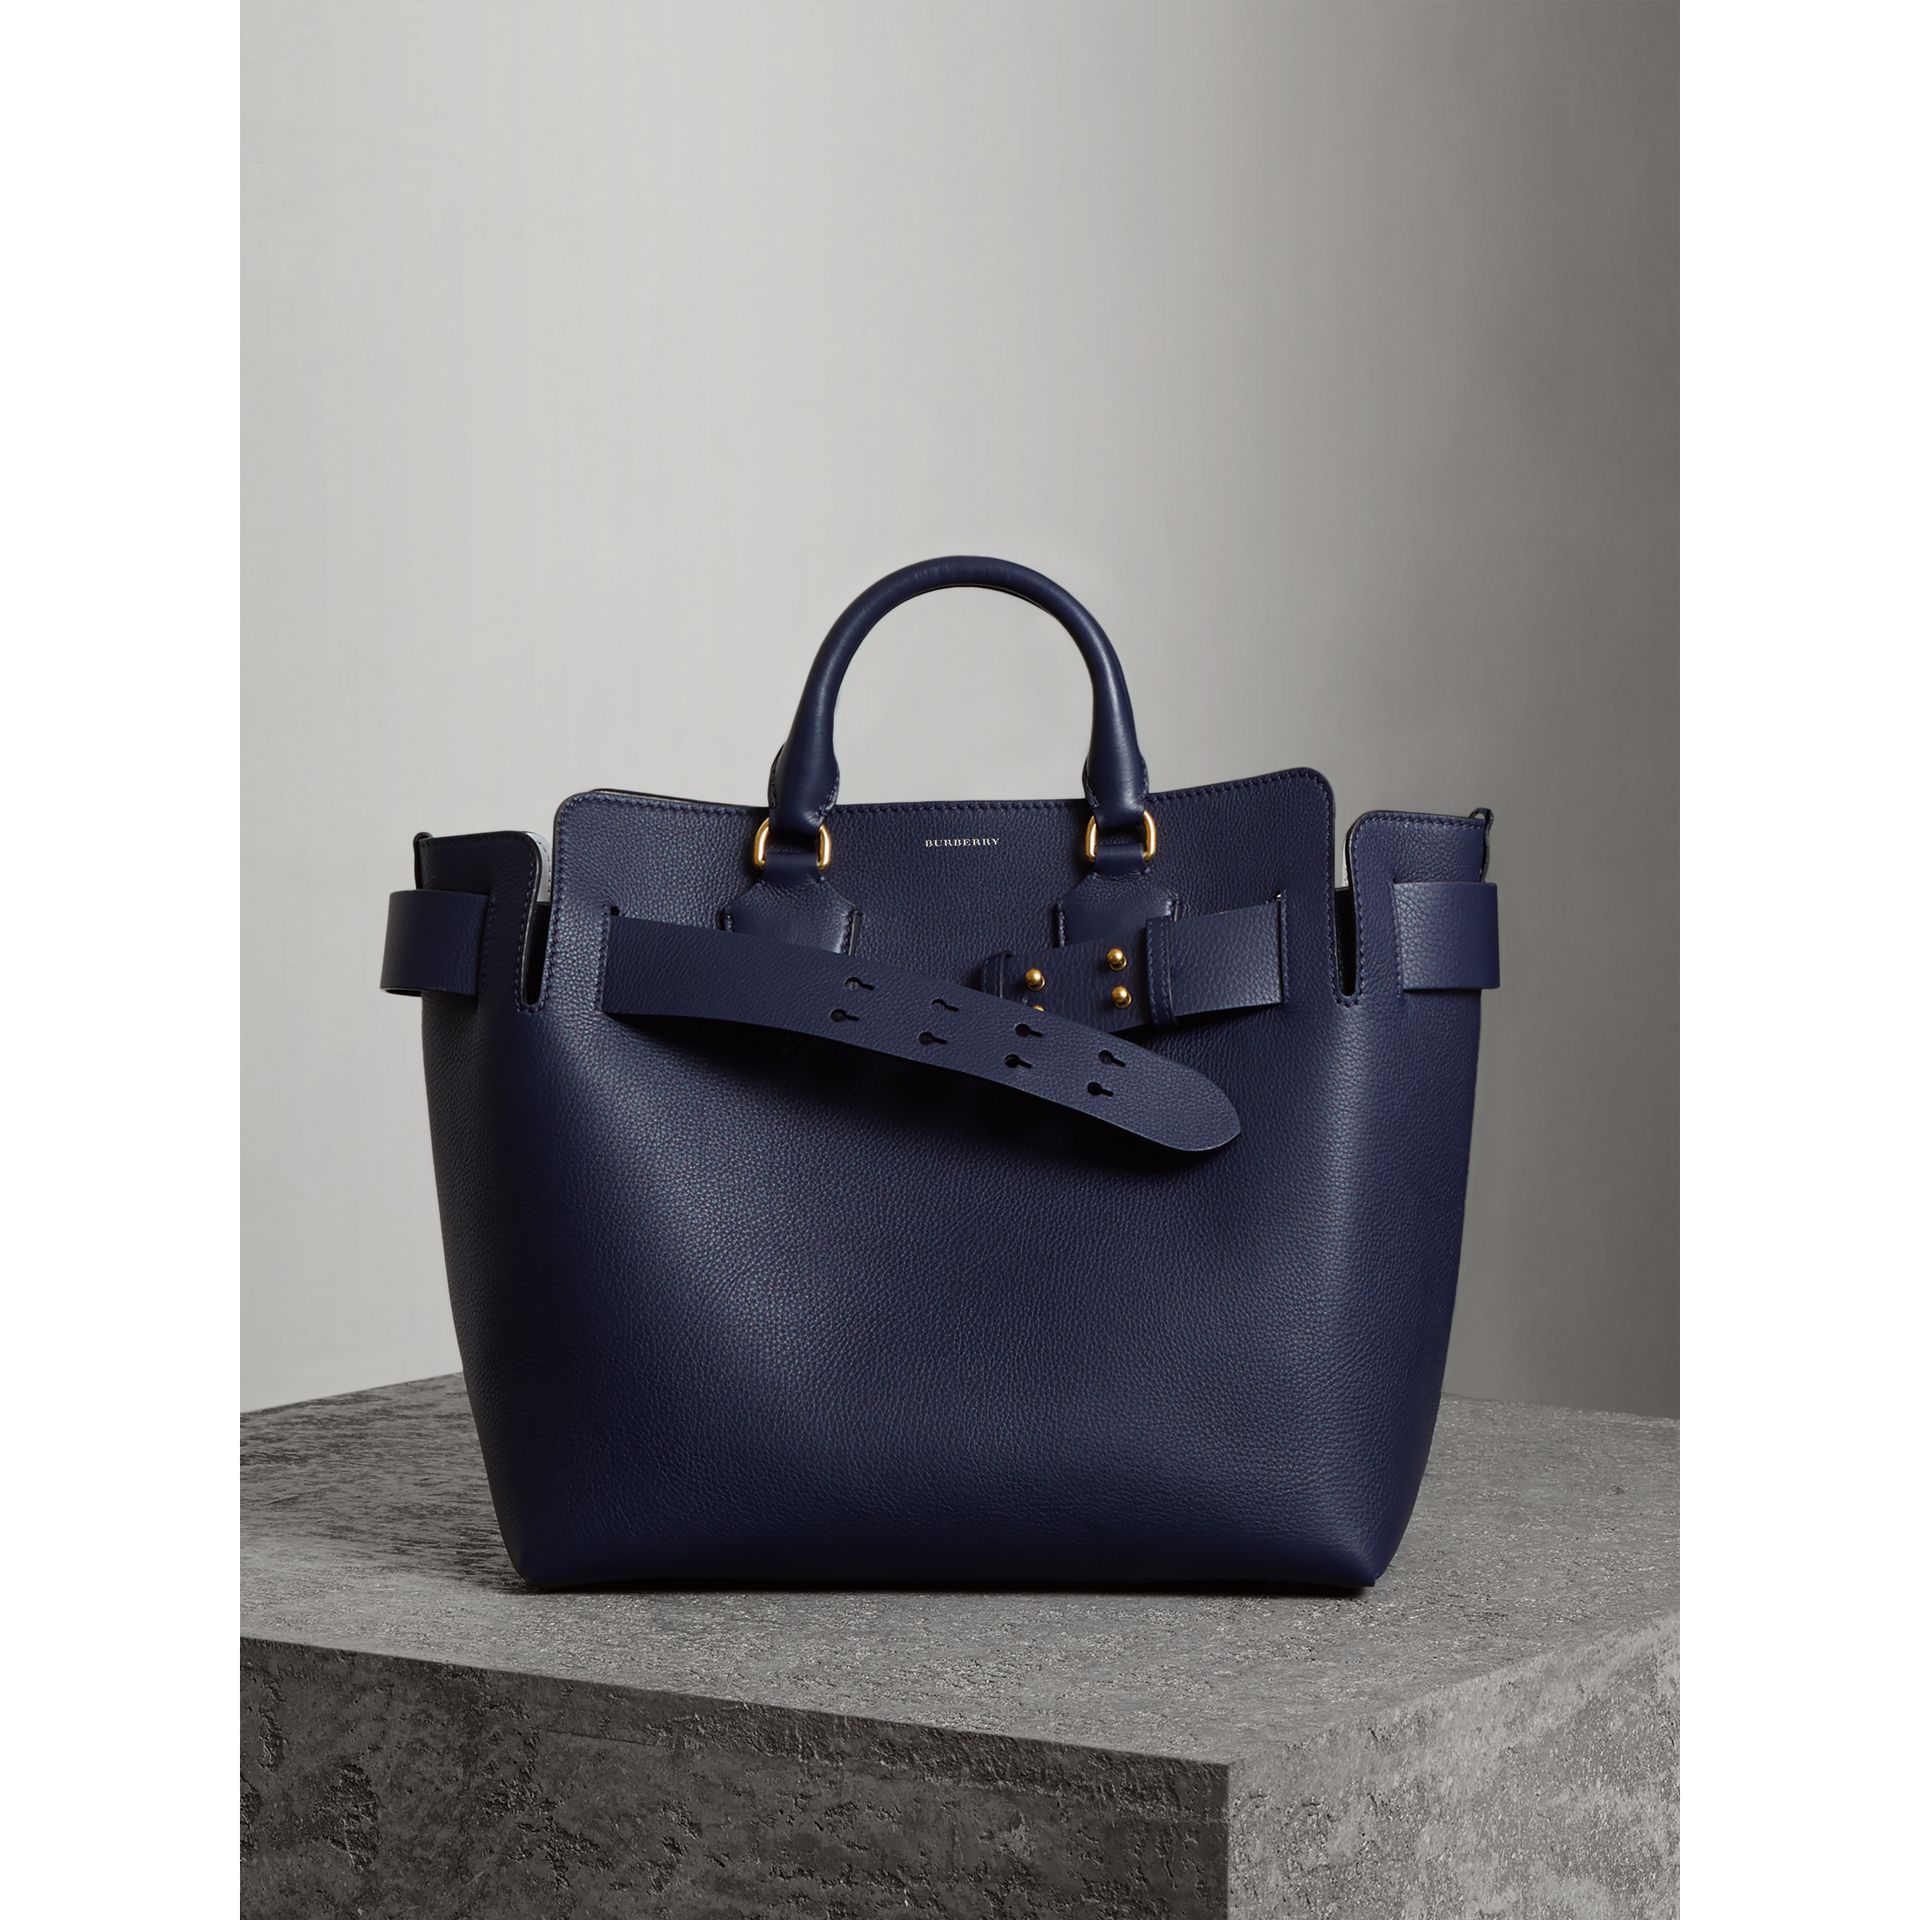 Sac The Belt moyen en cuir (Bleu Régence) - Femme | Burberry Canada - photo de la galerie 6